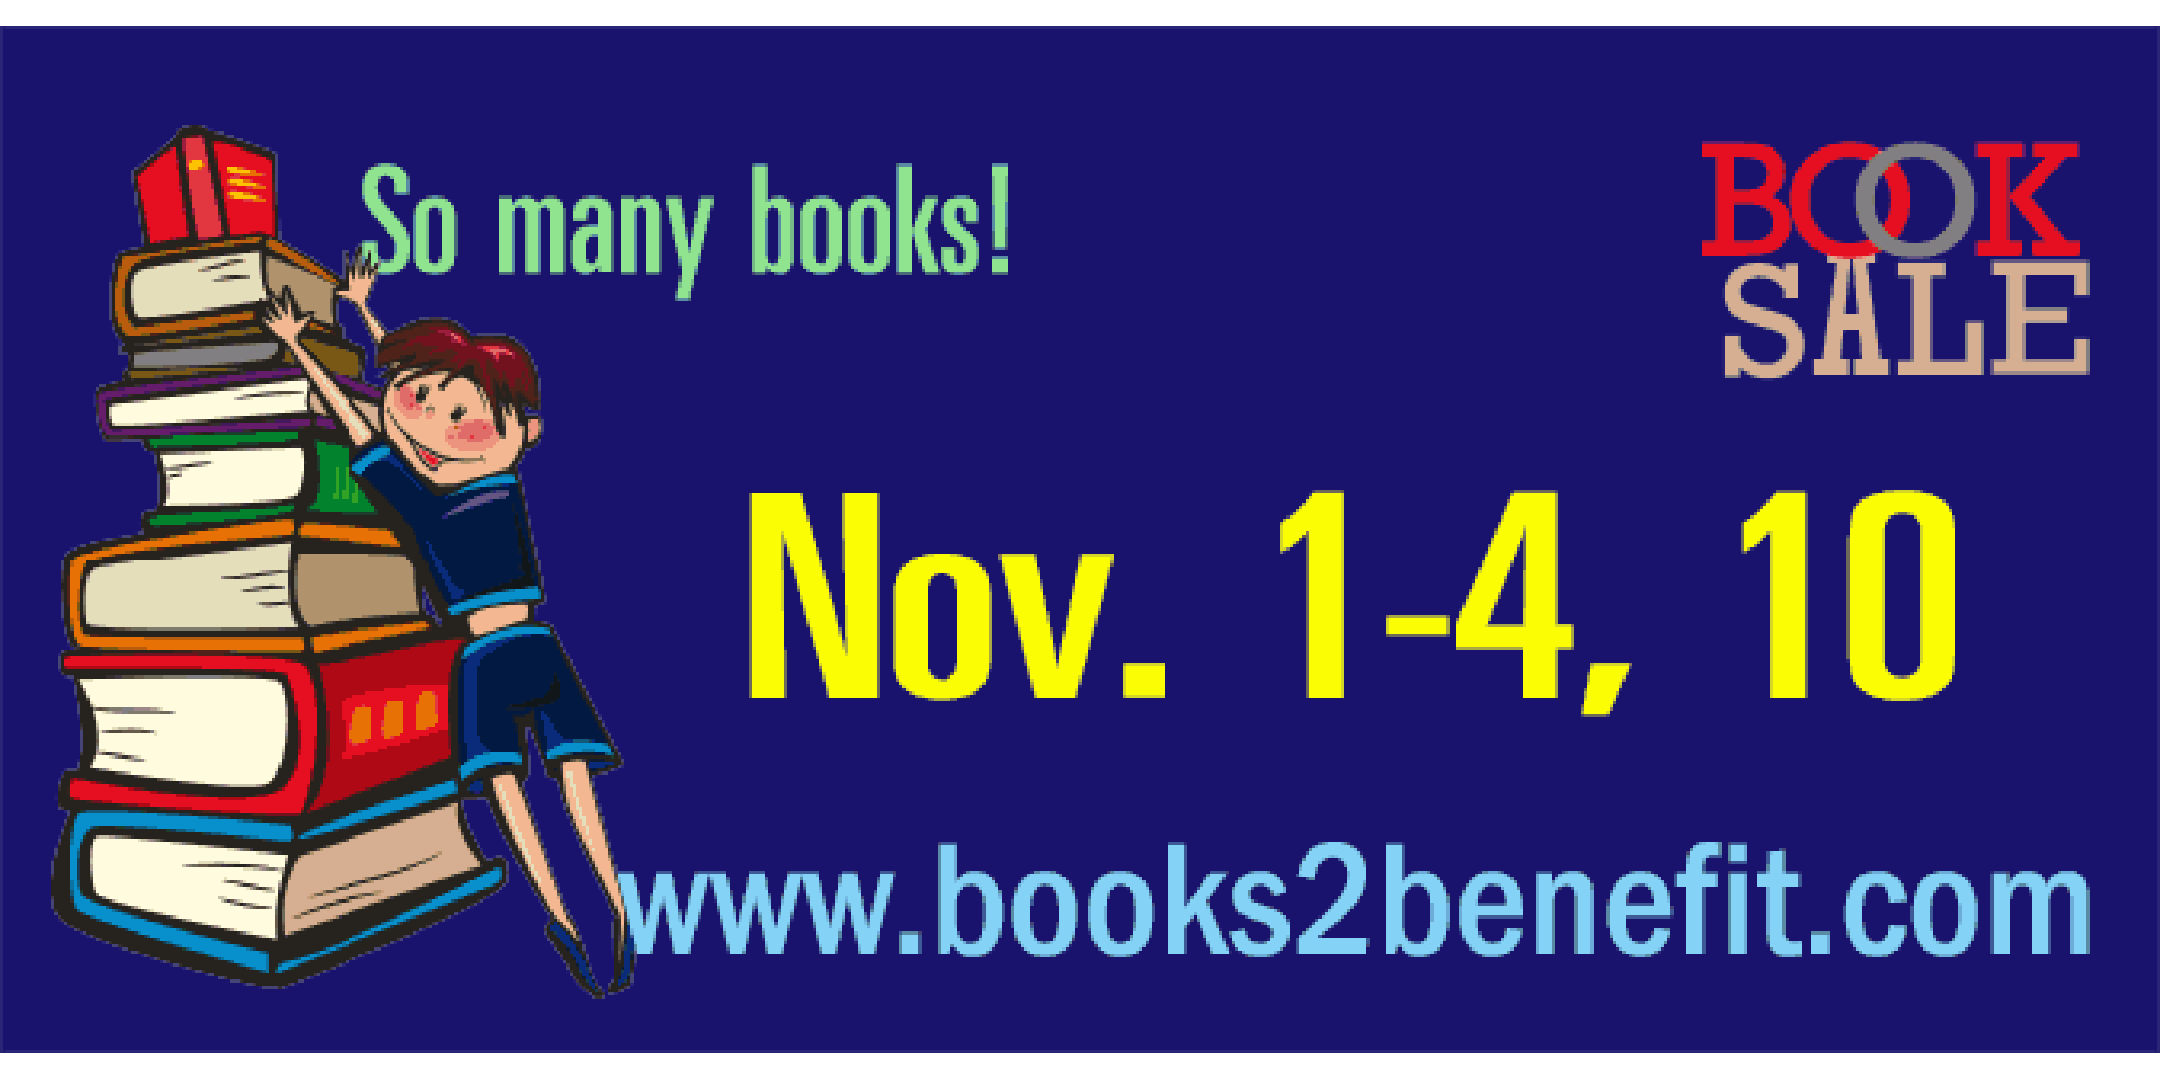 Books to Benefit Used Book Sale - Nov. 1-4, 10